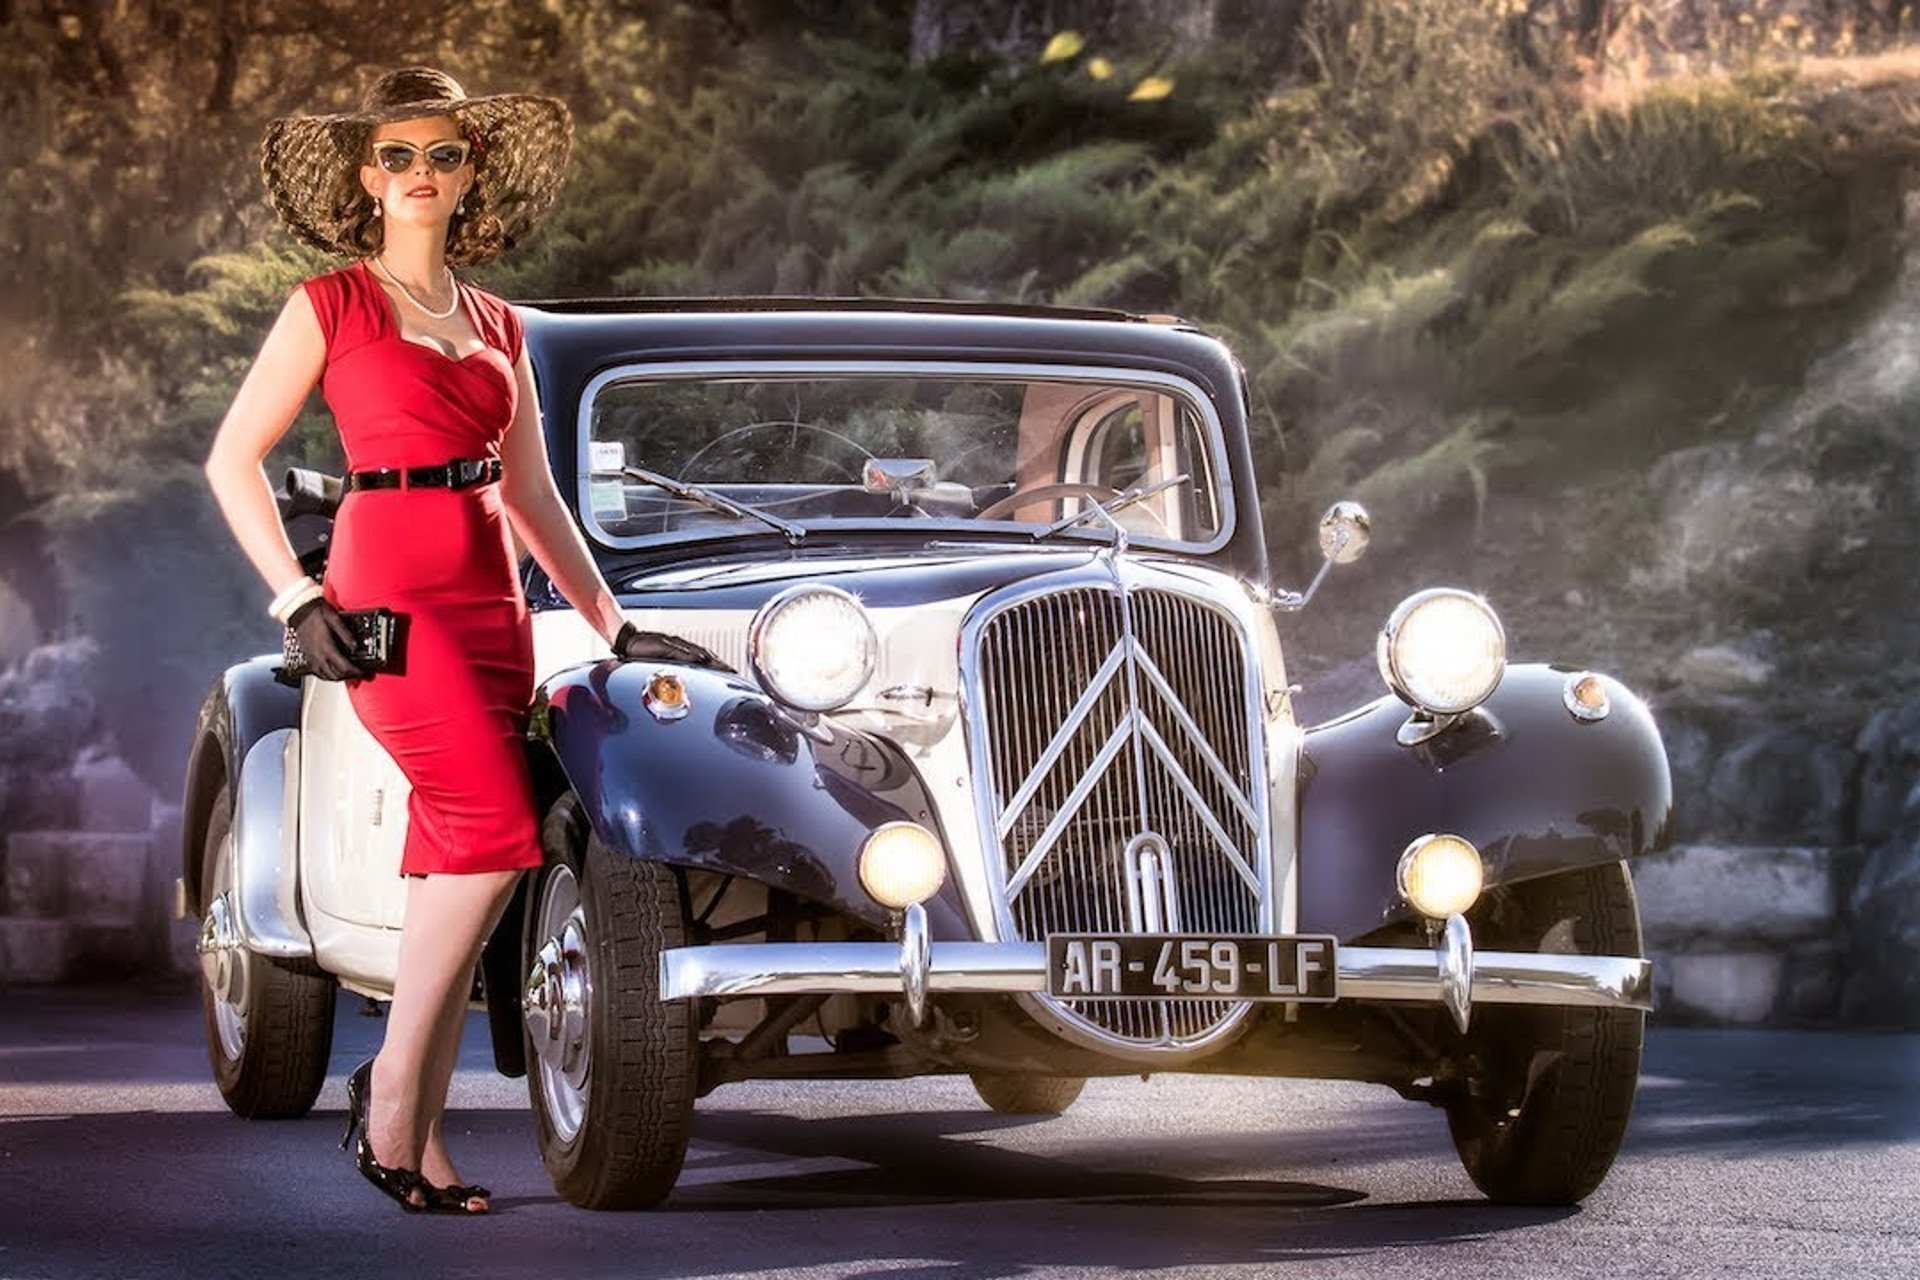 An elegant woman red dress standing by a Citroën vintage car